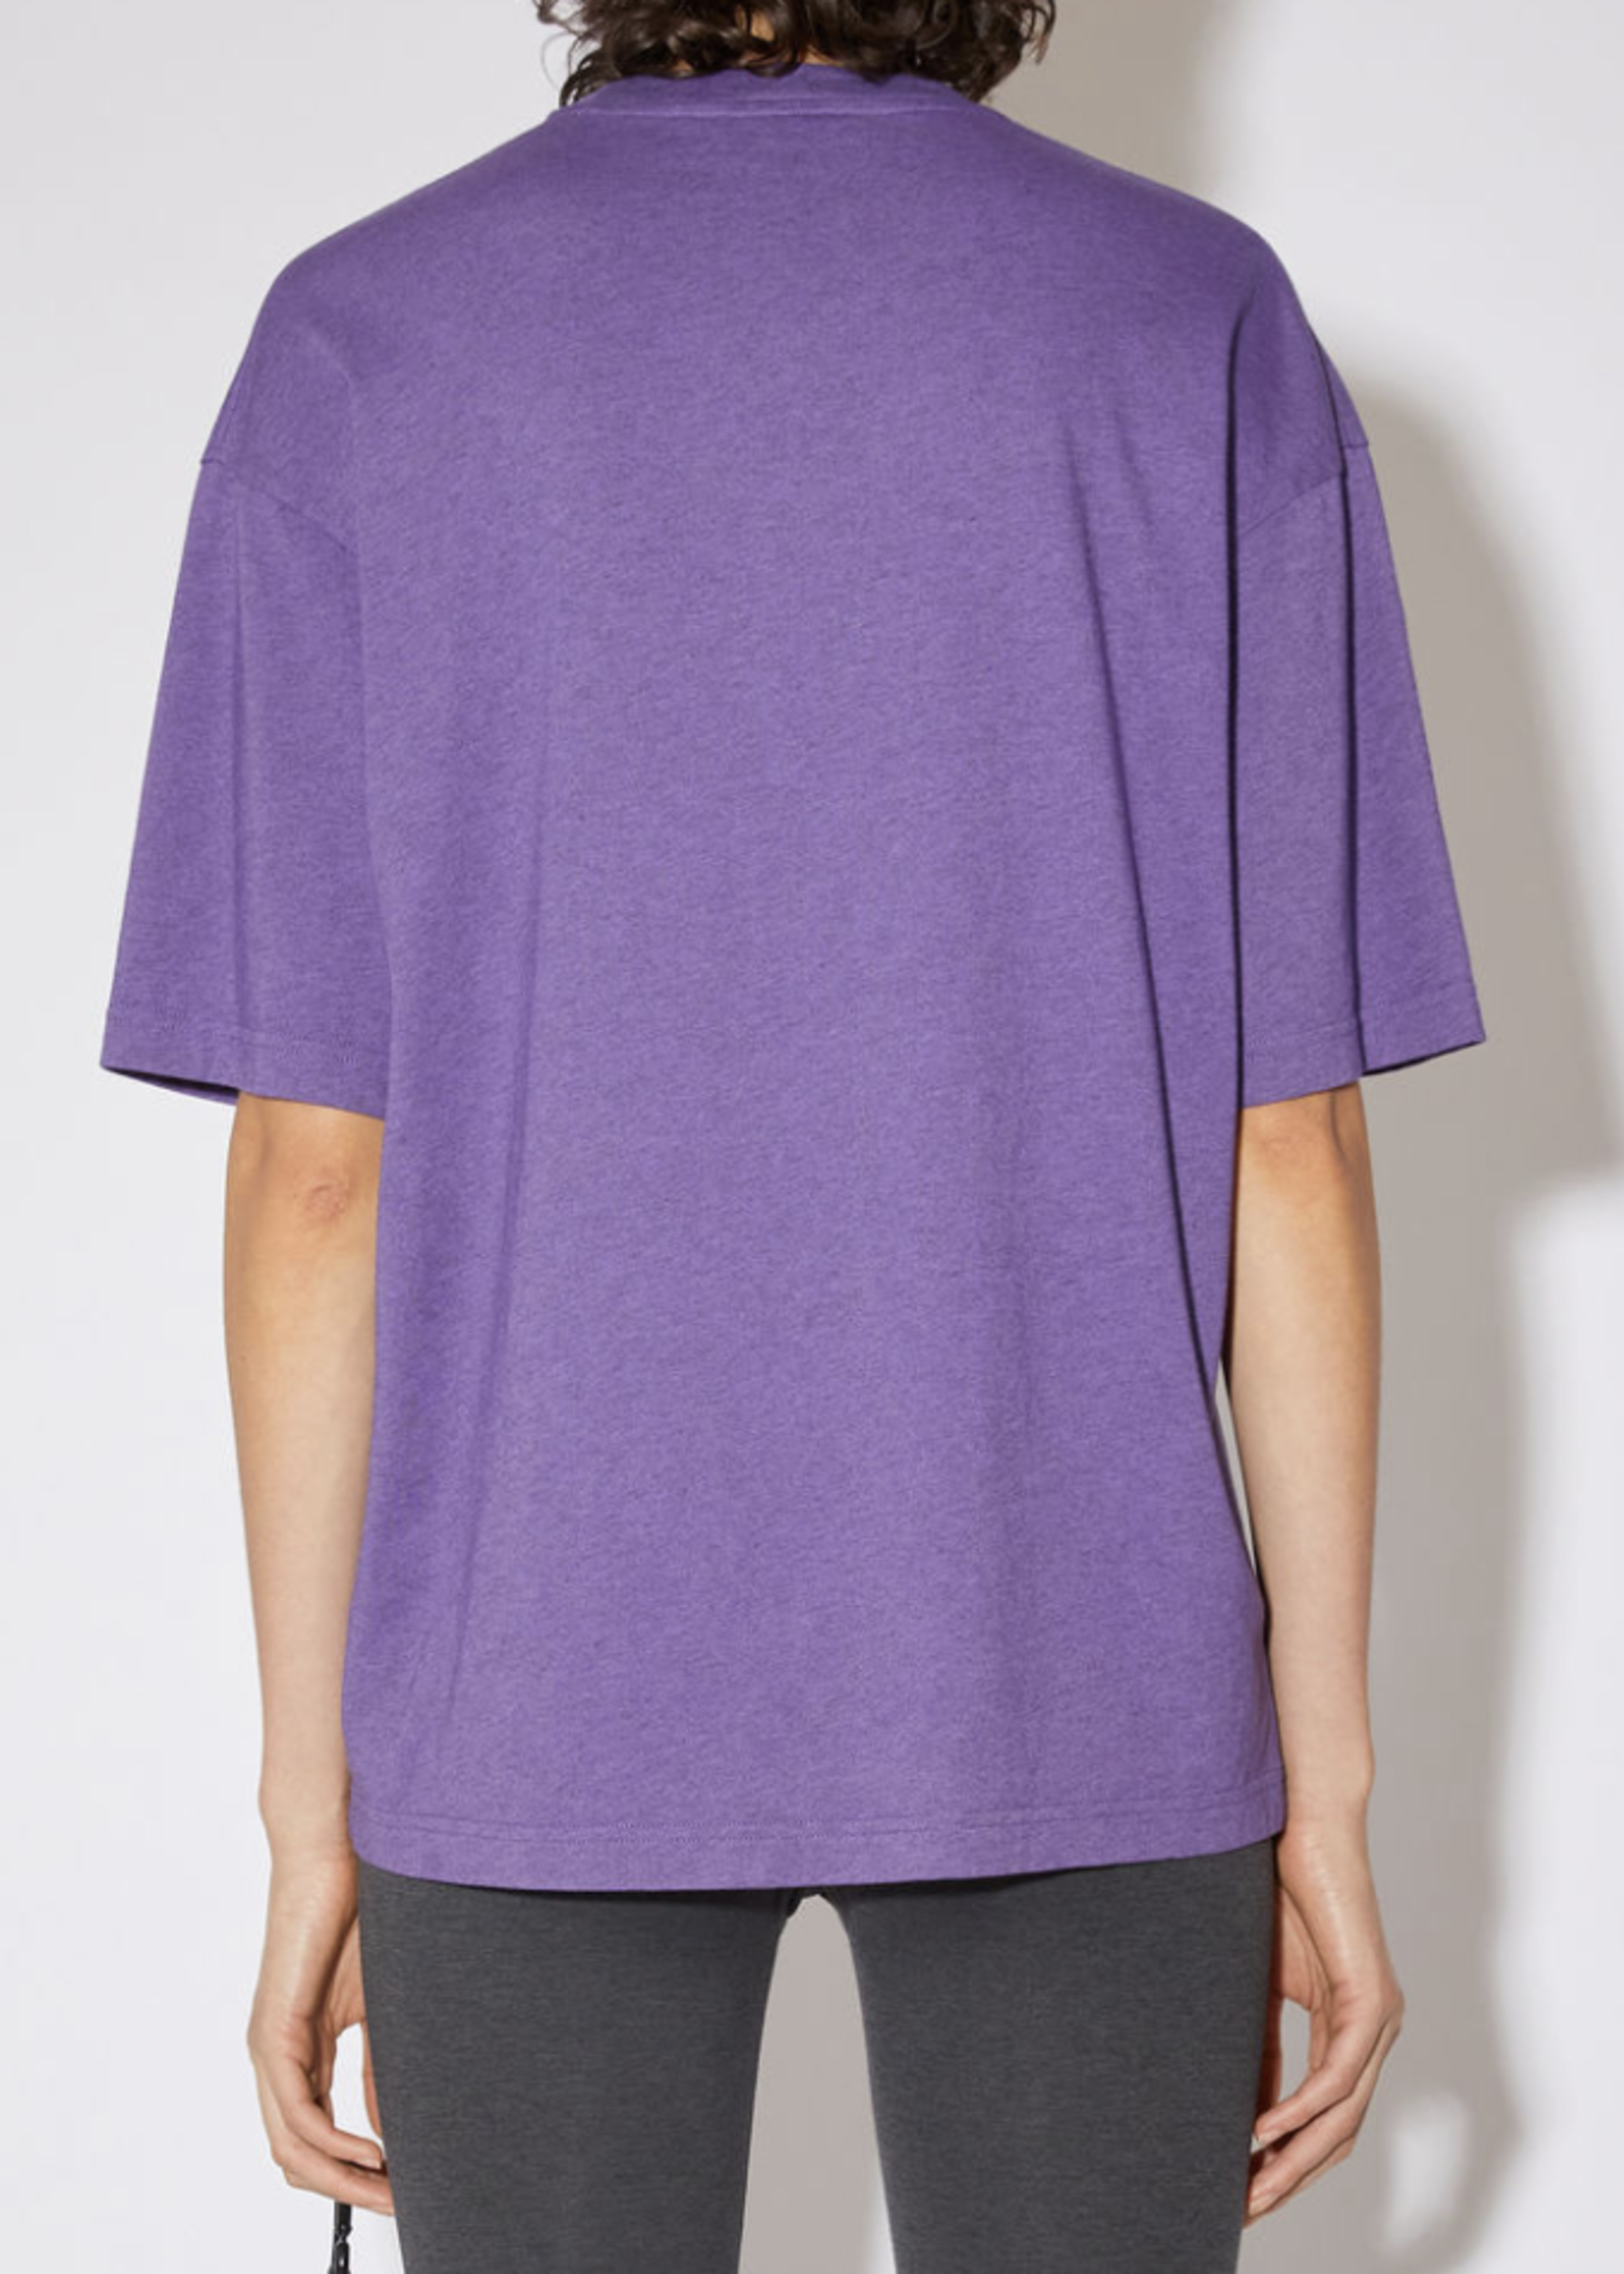 Acne Studios Acne Studios relaxed fit t-shirt electric purple